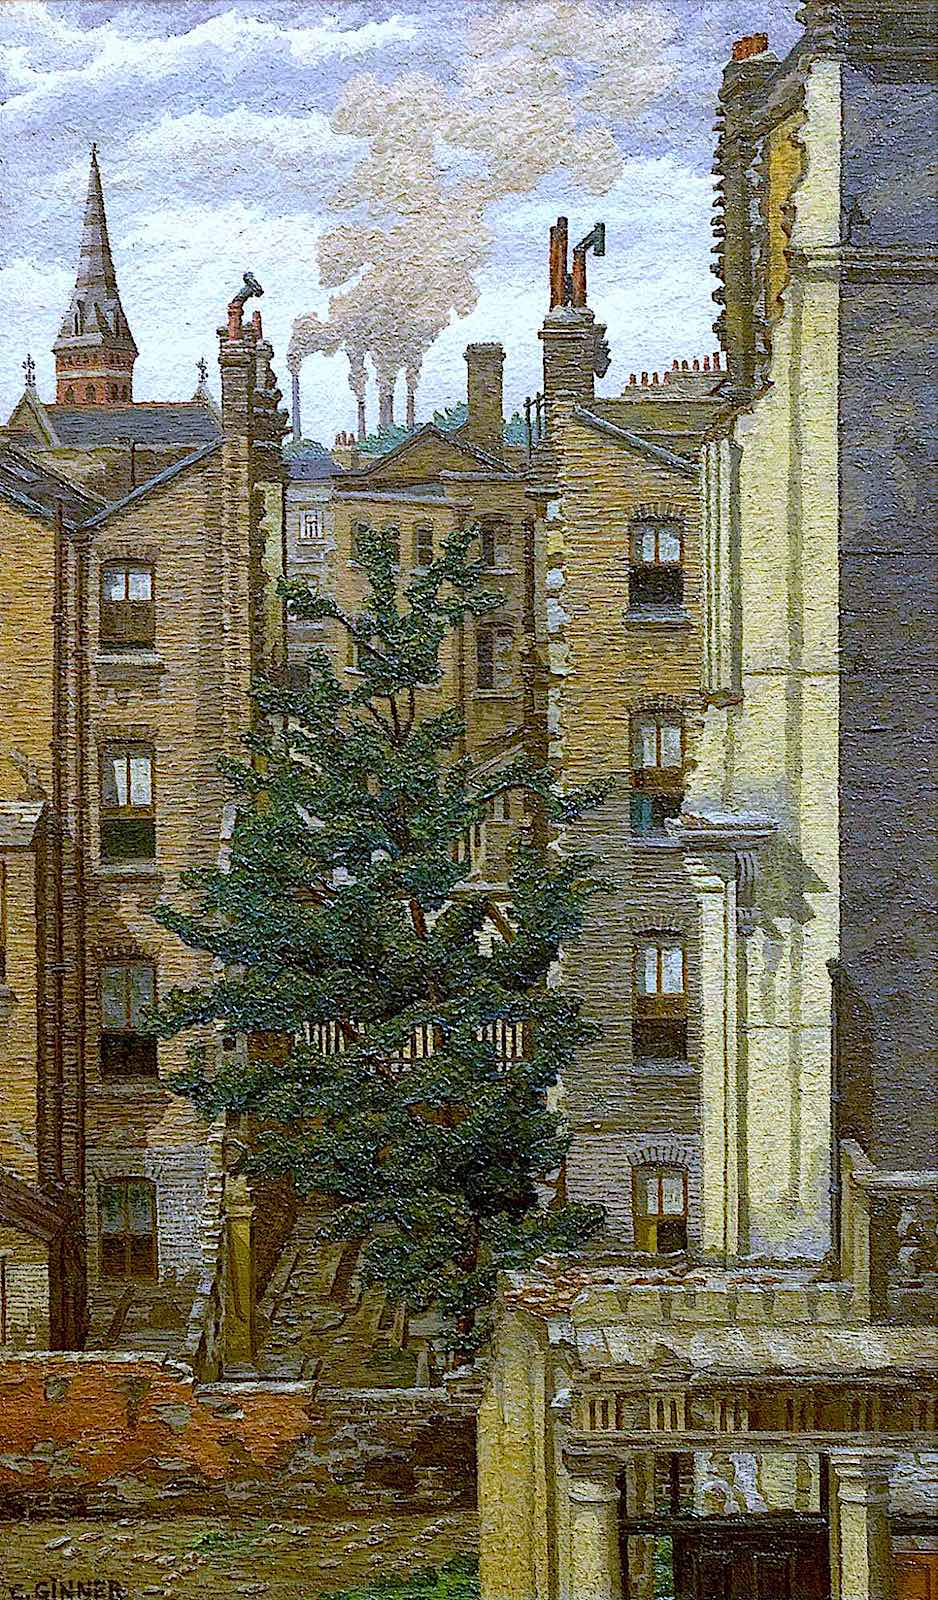 a 1942 Charles Ginner painting of a tree among brick buildings